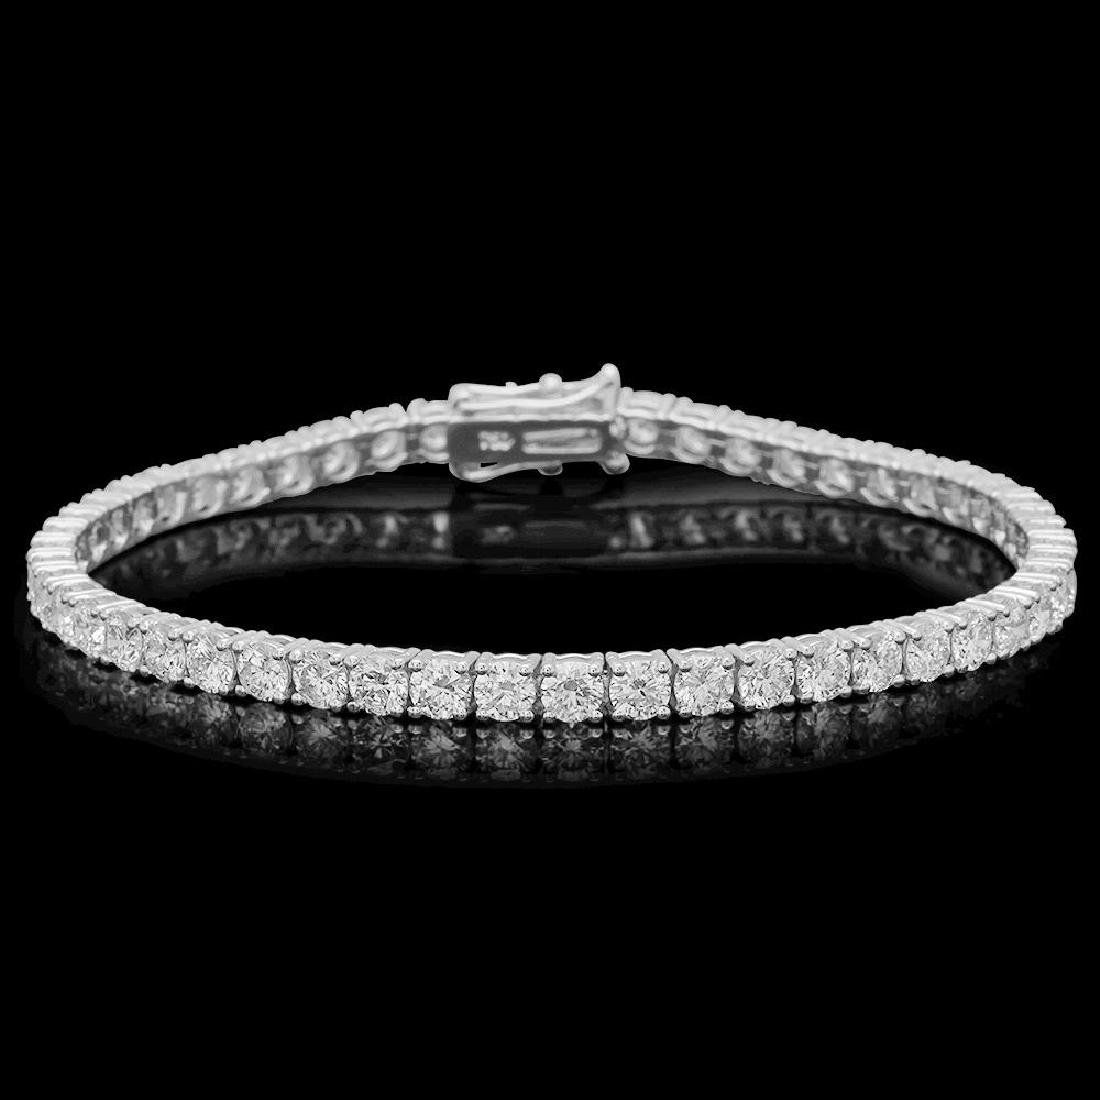 18K Gold 7.82ct Diamond Bracelet